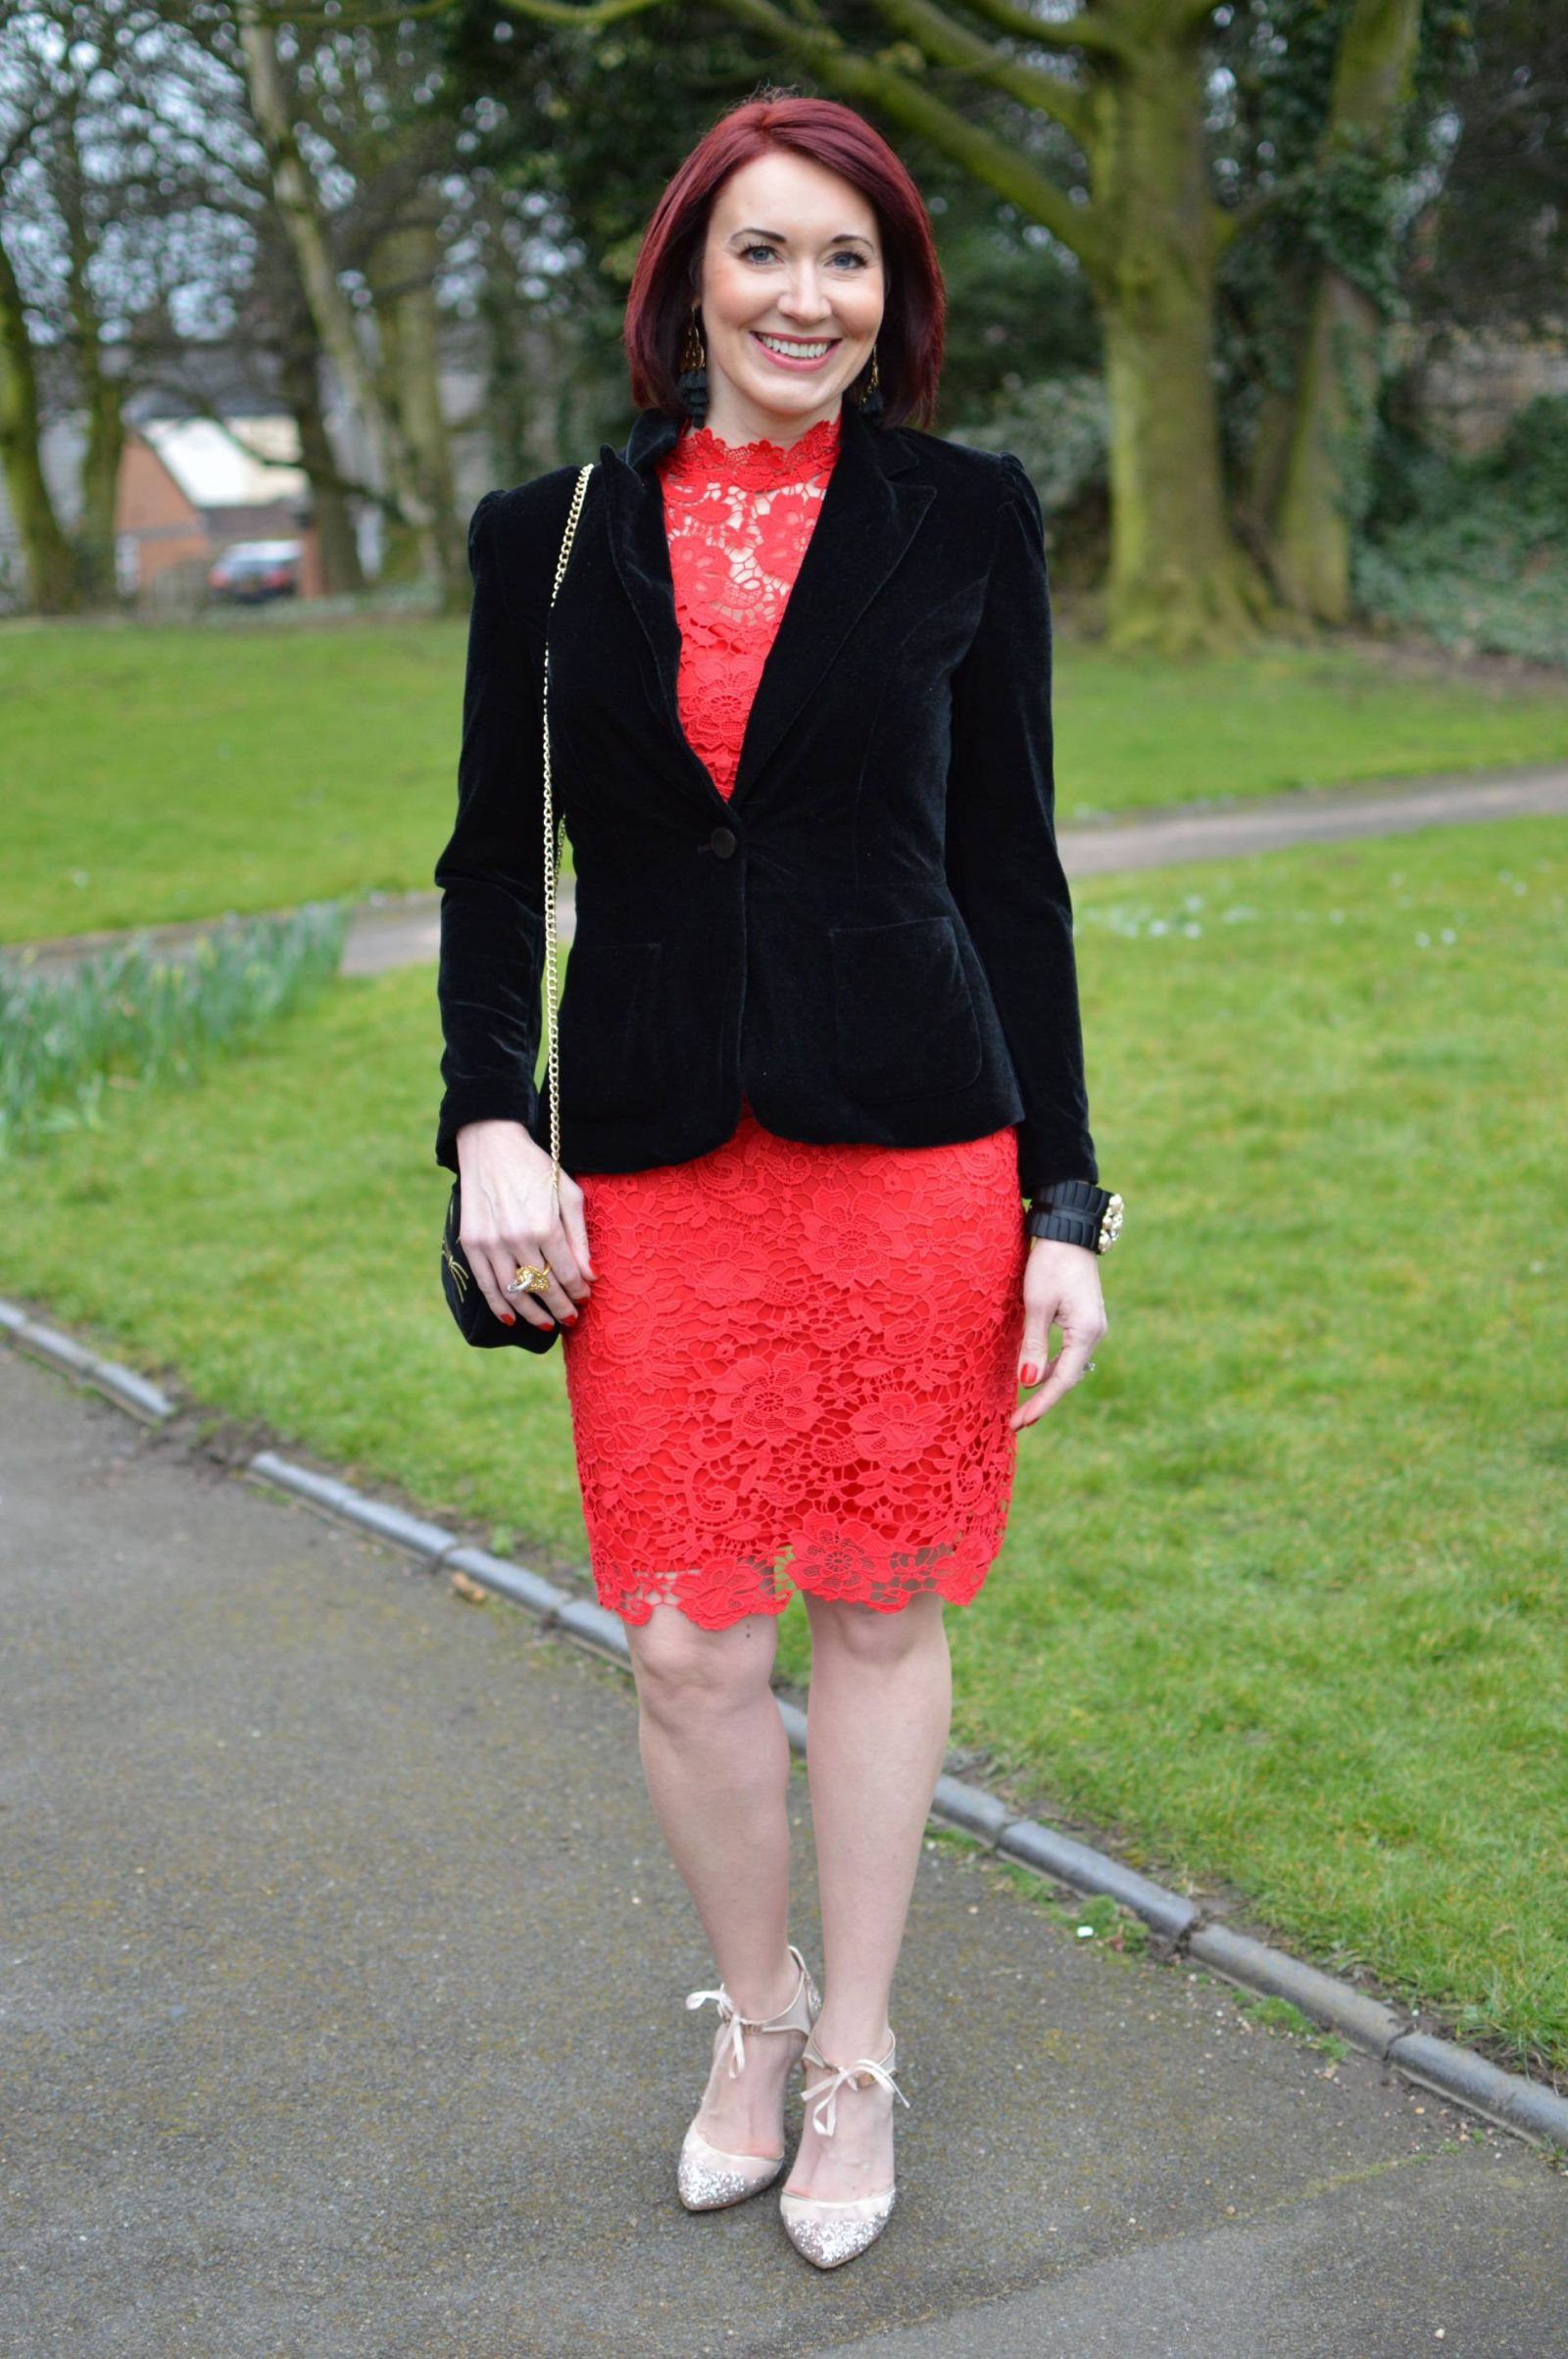 Red Lace Dress and Velvet Jacket